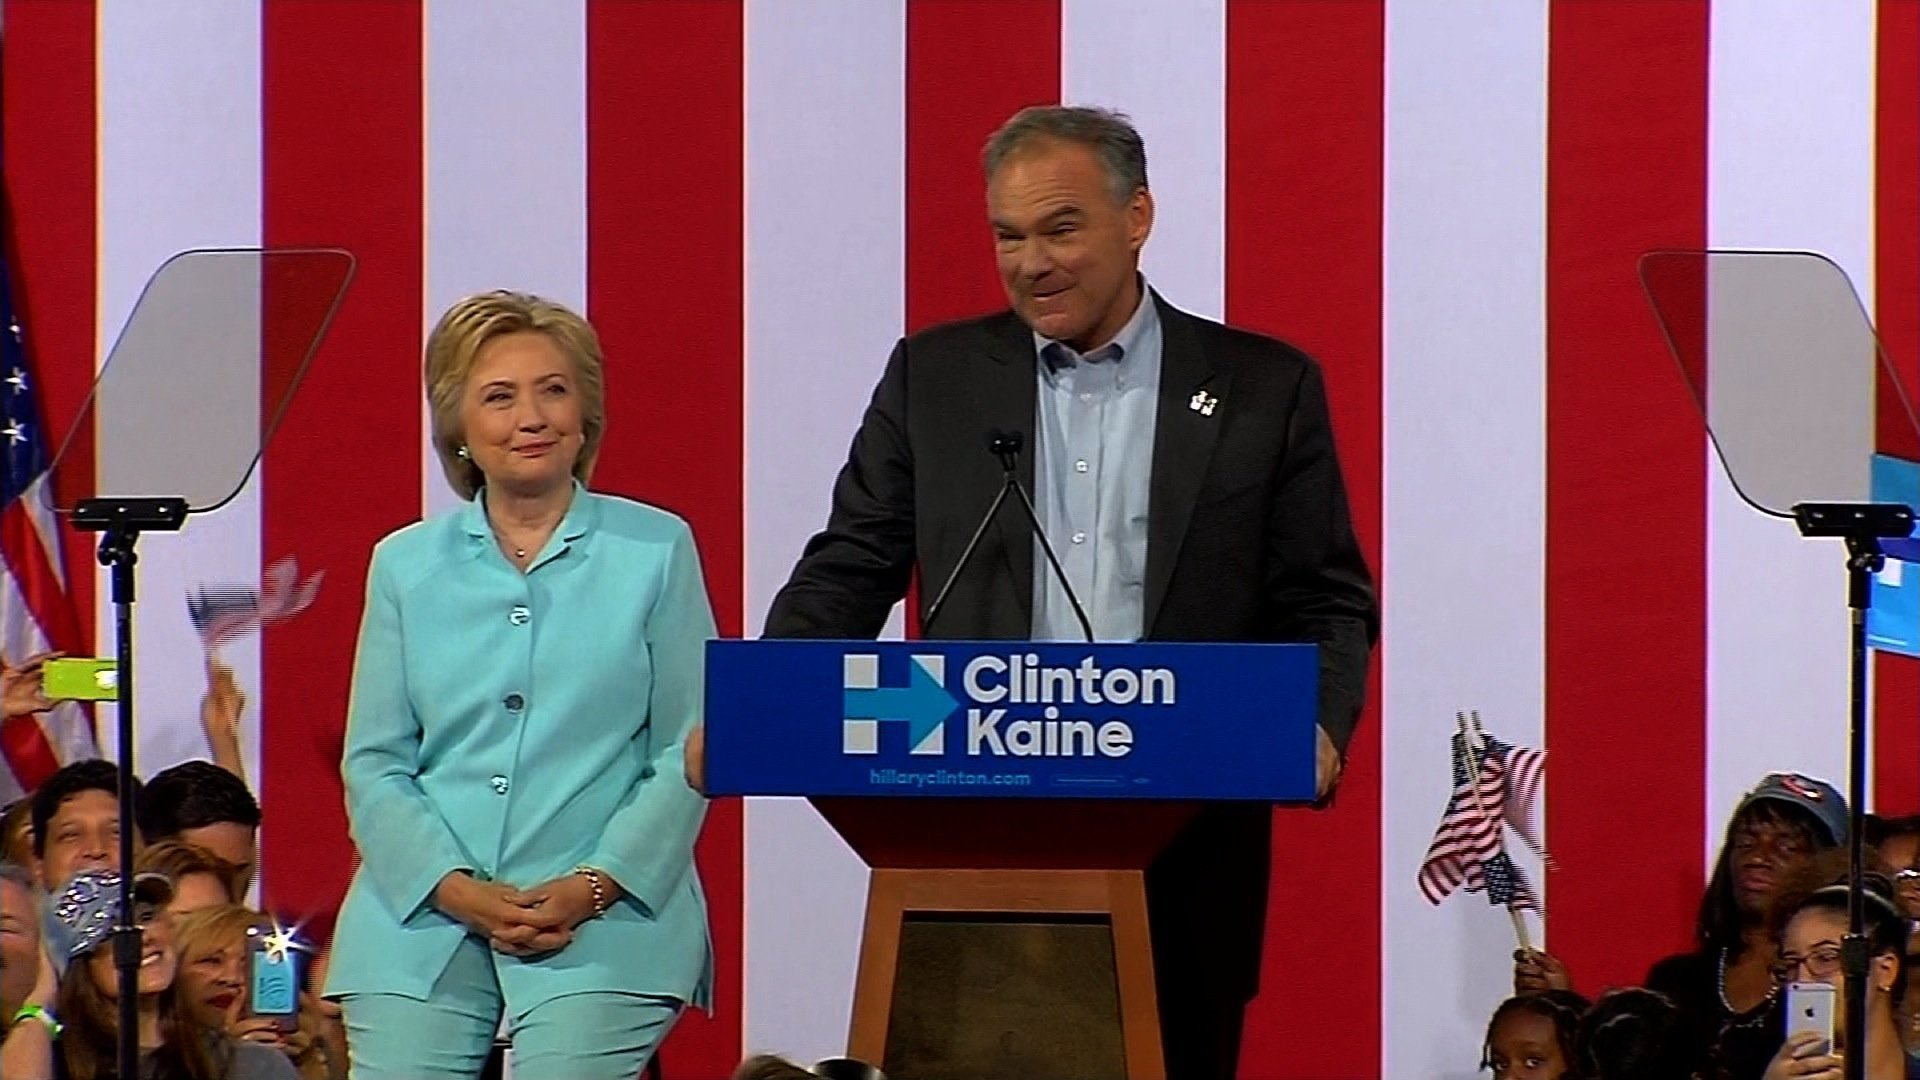 Clinton, Kaine to stop in Youngstown after DNC